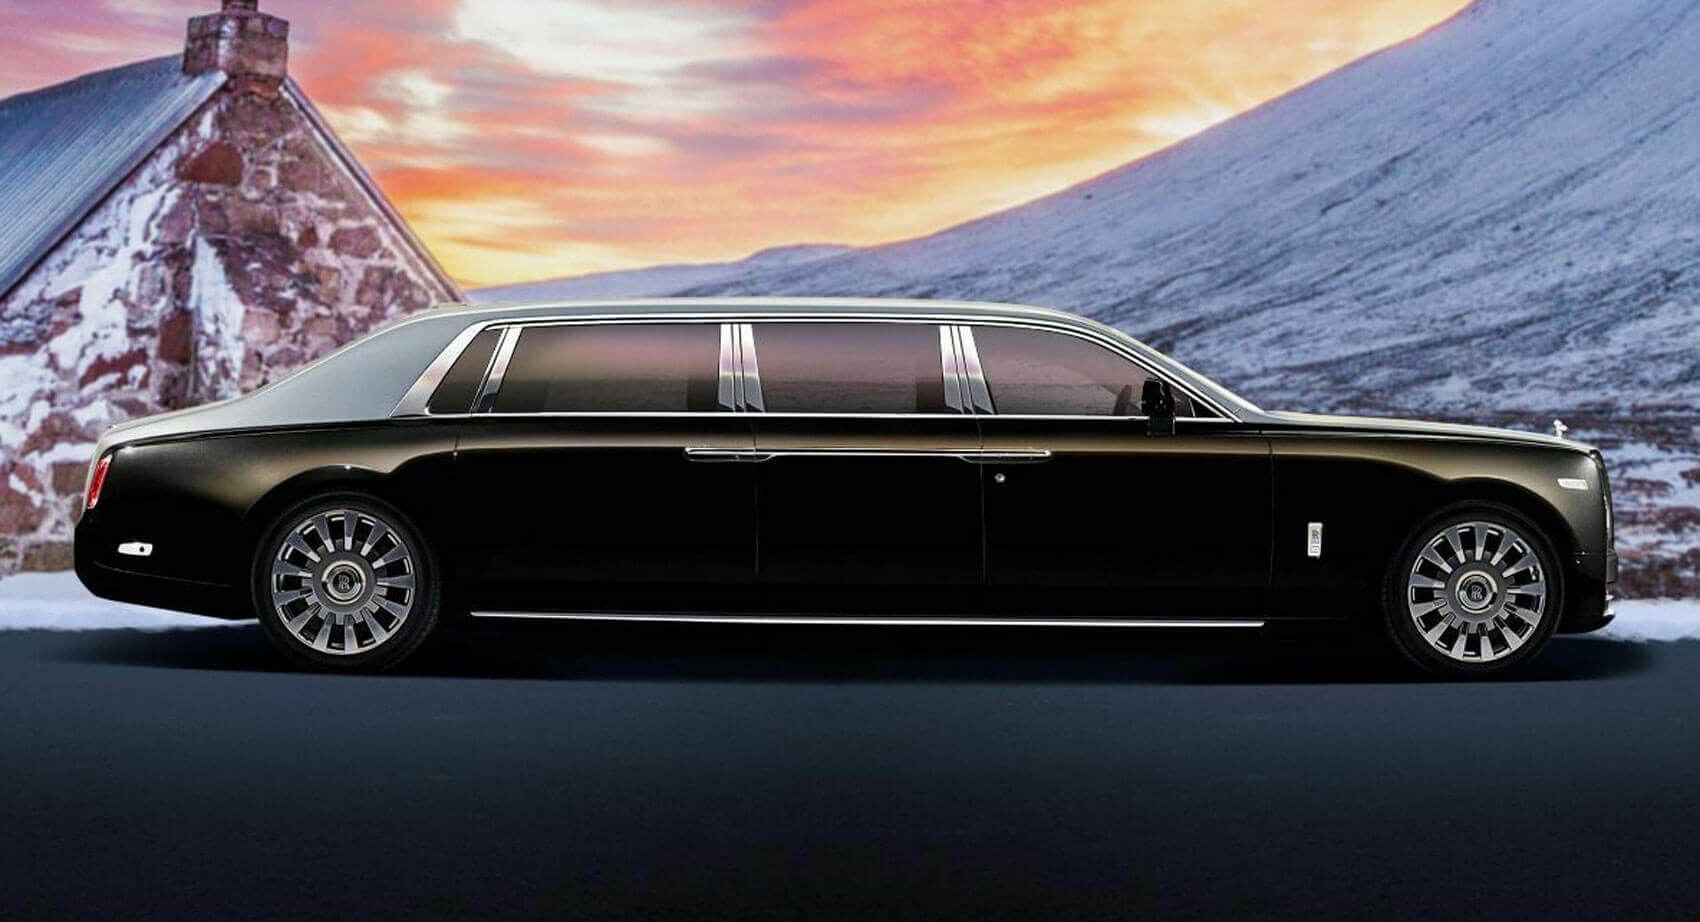 23 Footlong Armored Rolls Royce Phantom Limo Is A Dictator S Wet Dream Carscoops